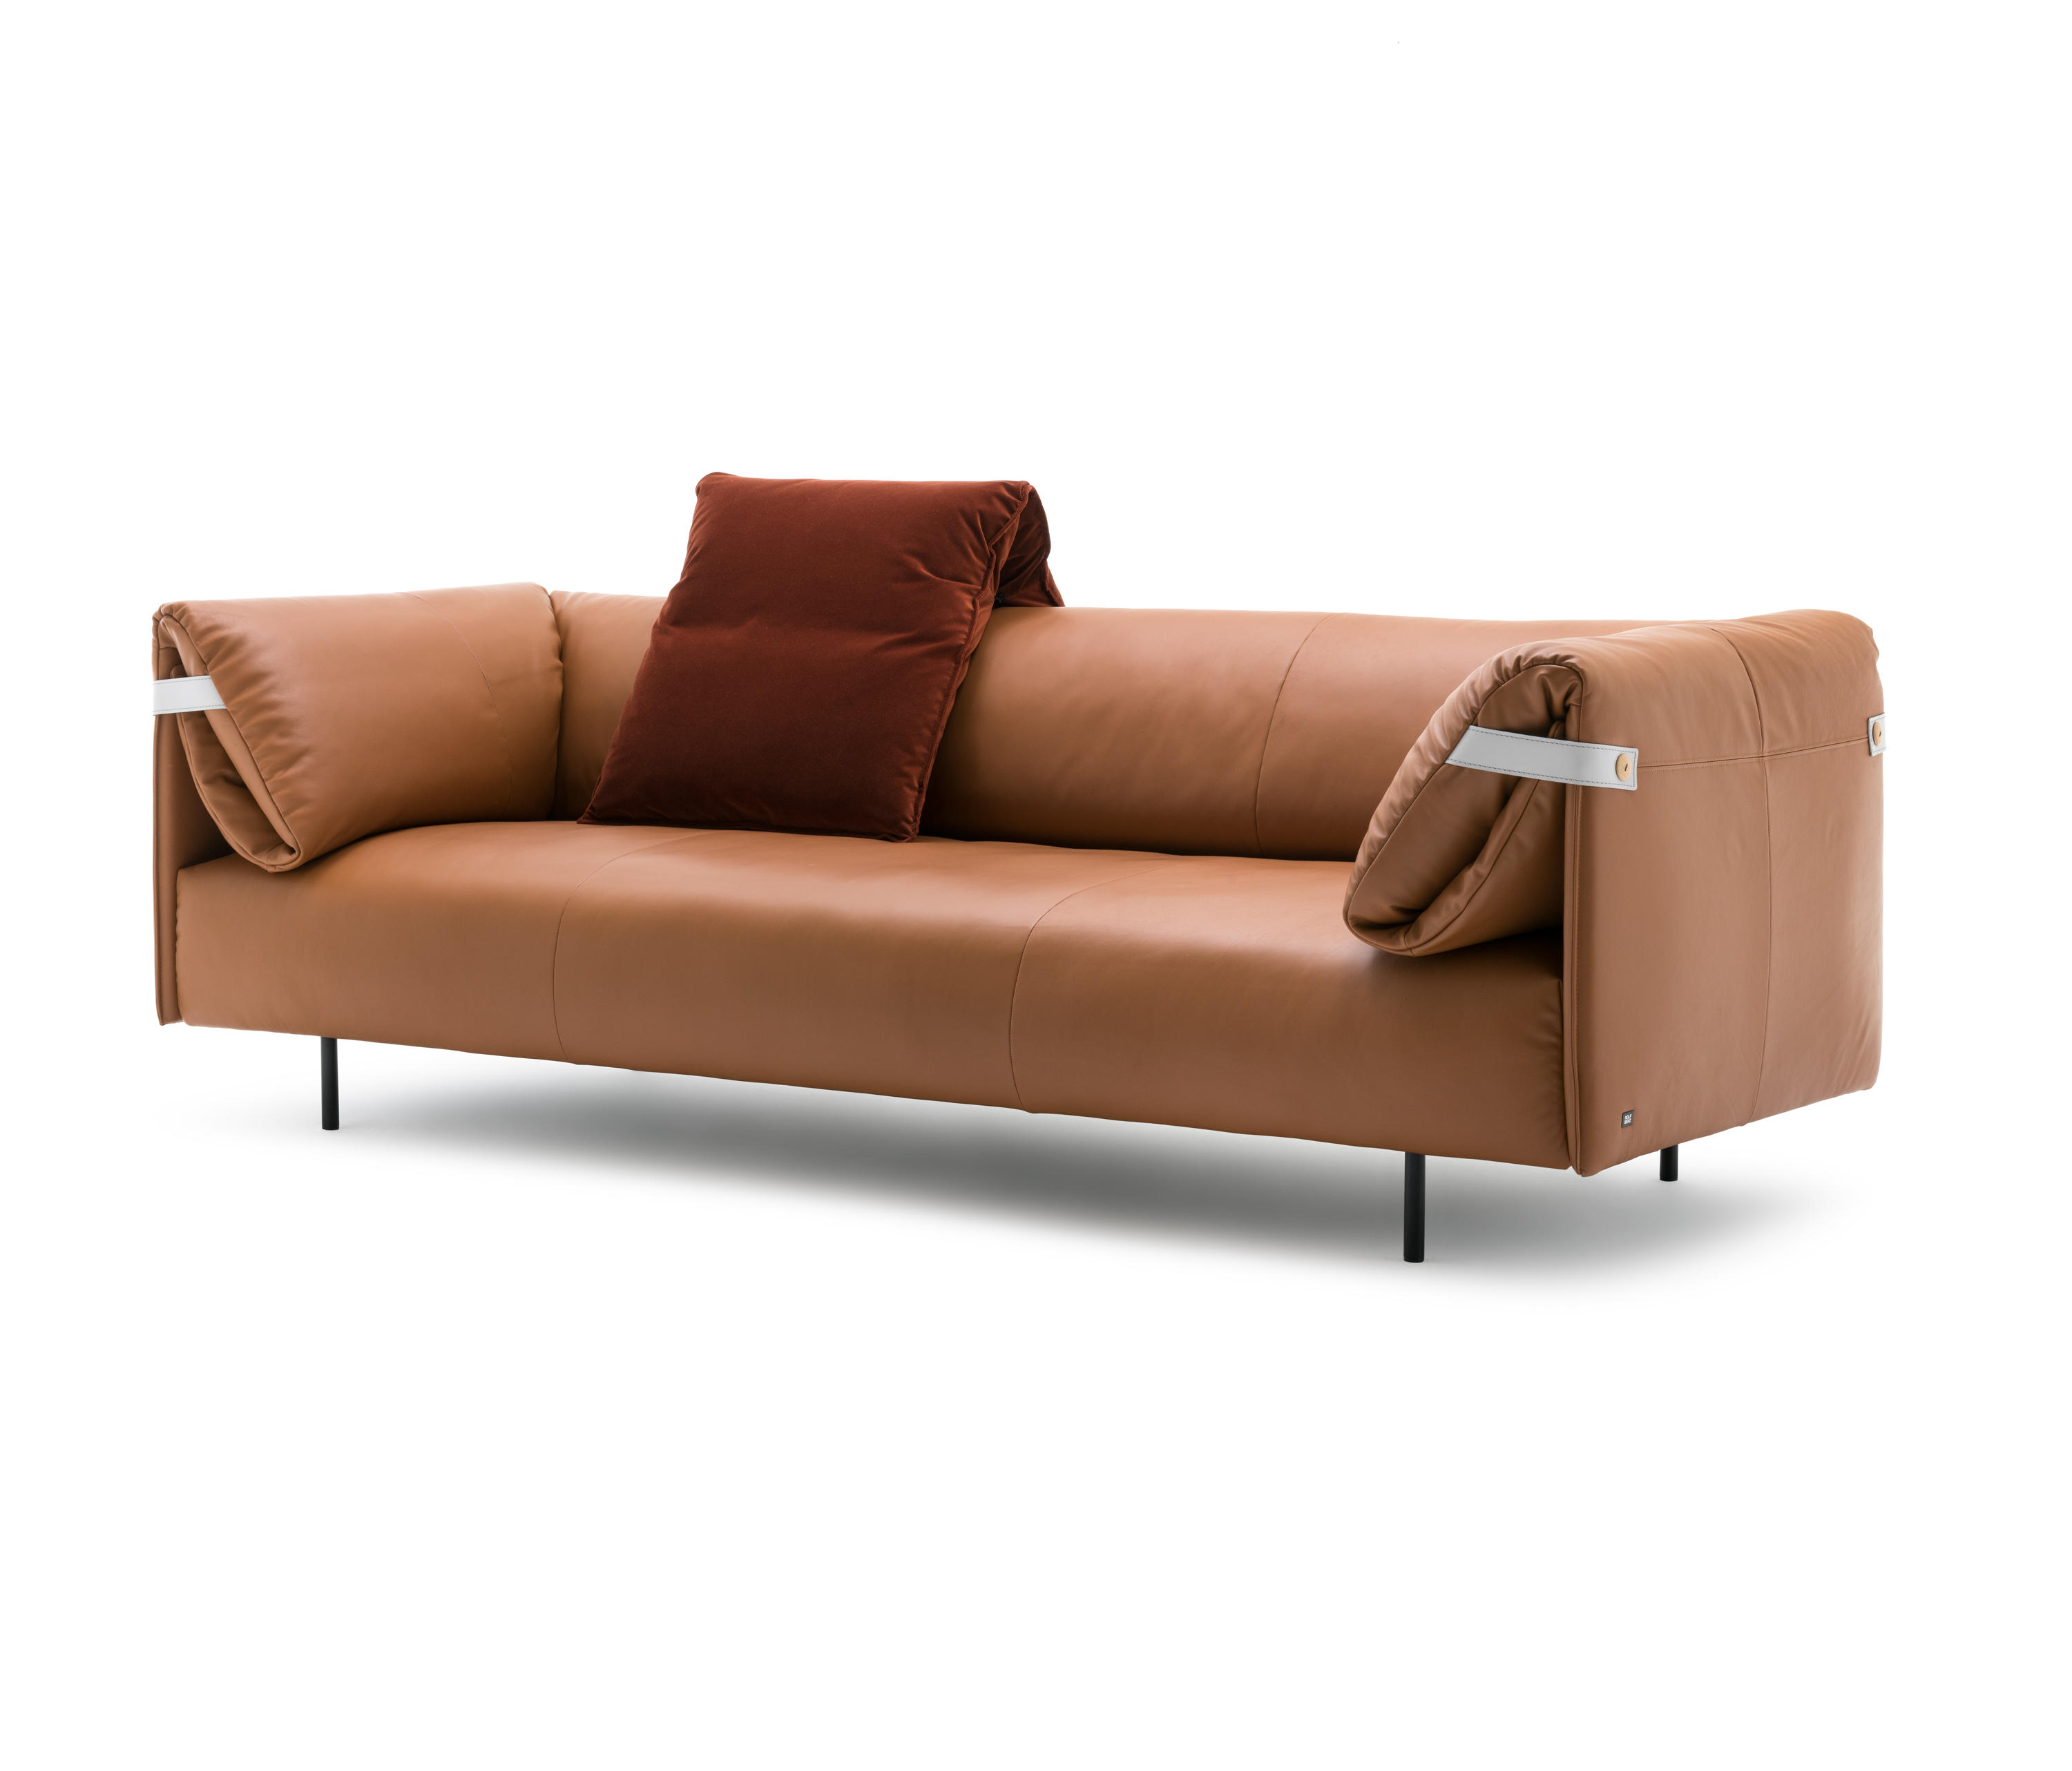 Rolf benz alma loungesofas von rolf benz architonic for Rolf benz nagold